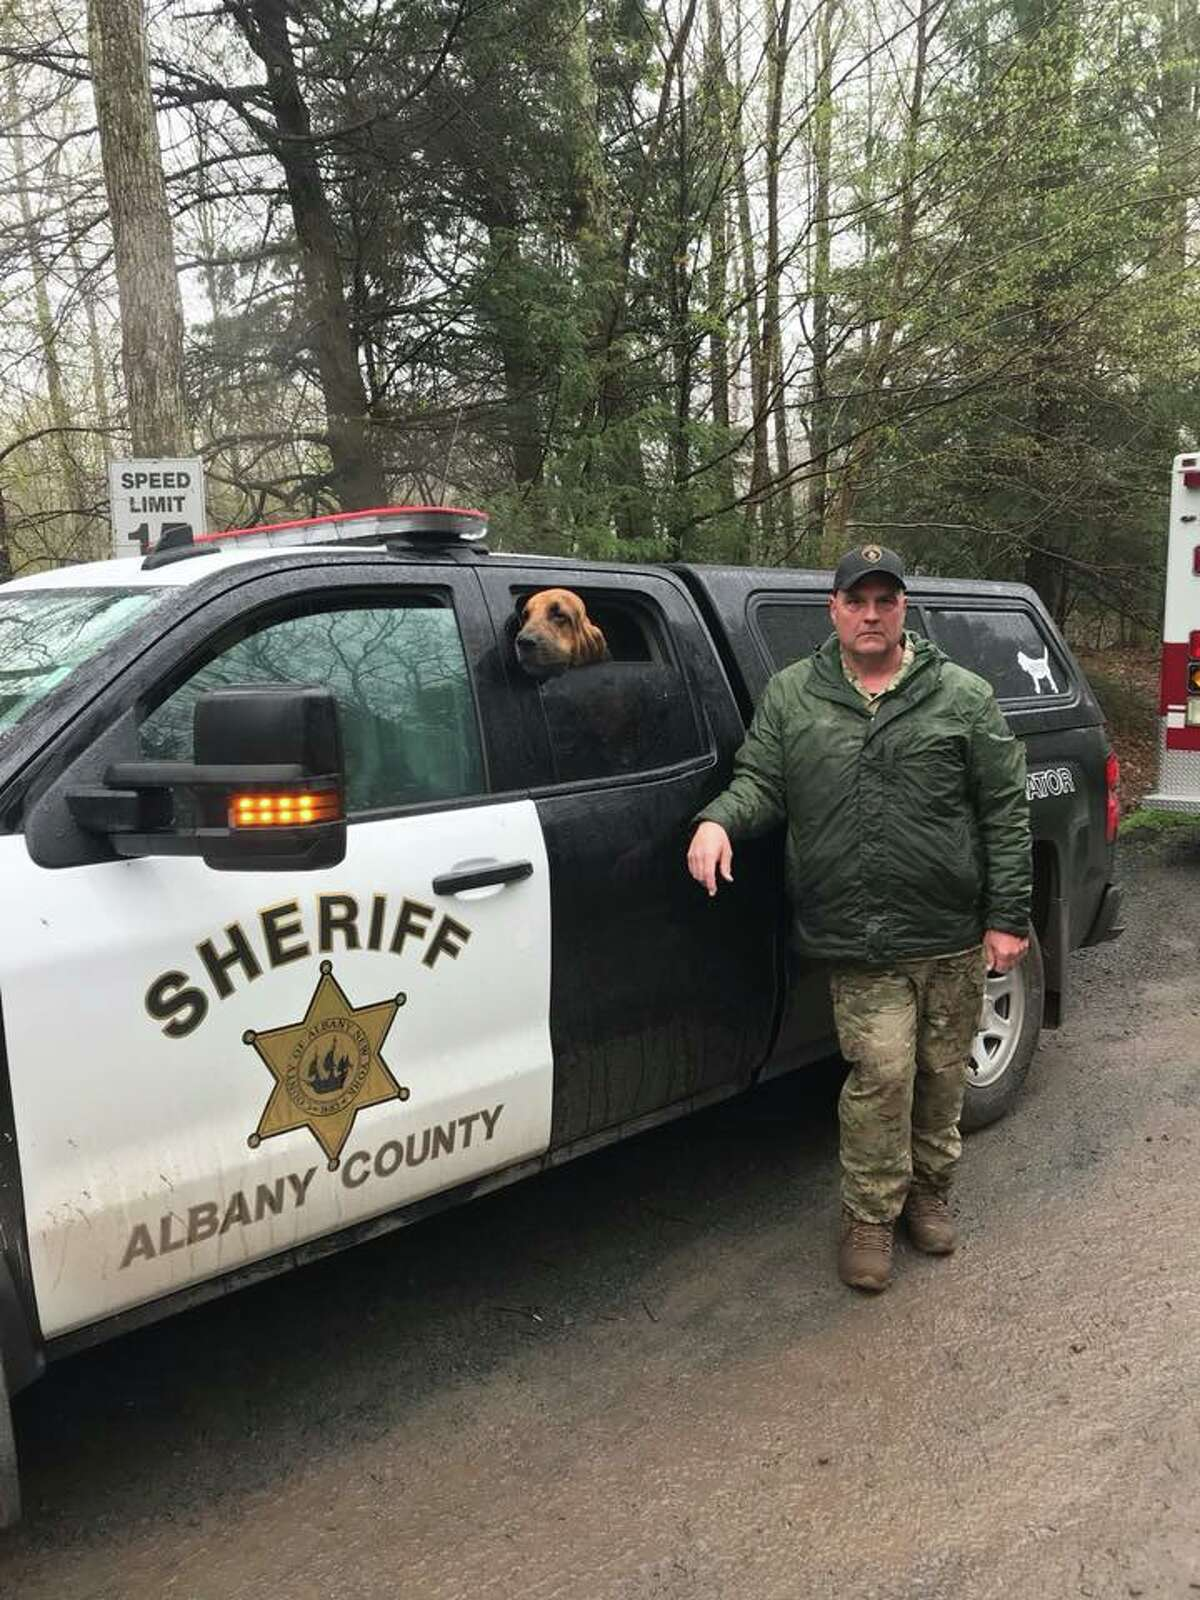 Albany County Fire Coordinator Gerald Paris, left, and Albany County Sheriff's search dog Baxter, a bloodhound, help forest rangers search for a missing 73-year-old man missing in Hunter, Greene County on Saturday, May 12, 2018. He was found and treated for hypothermia.